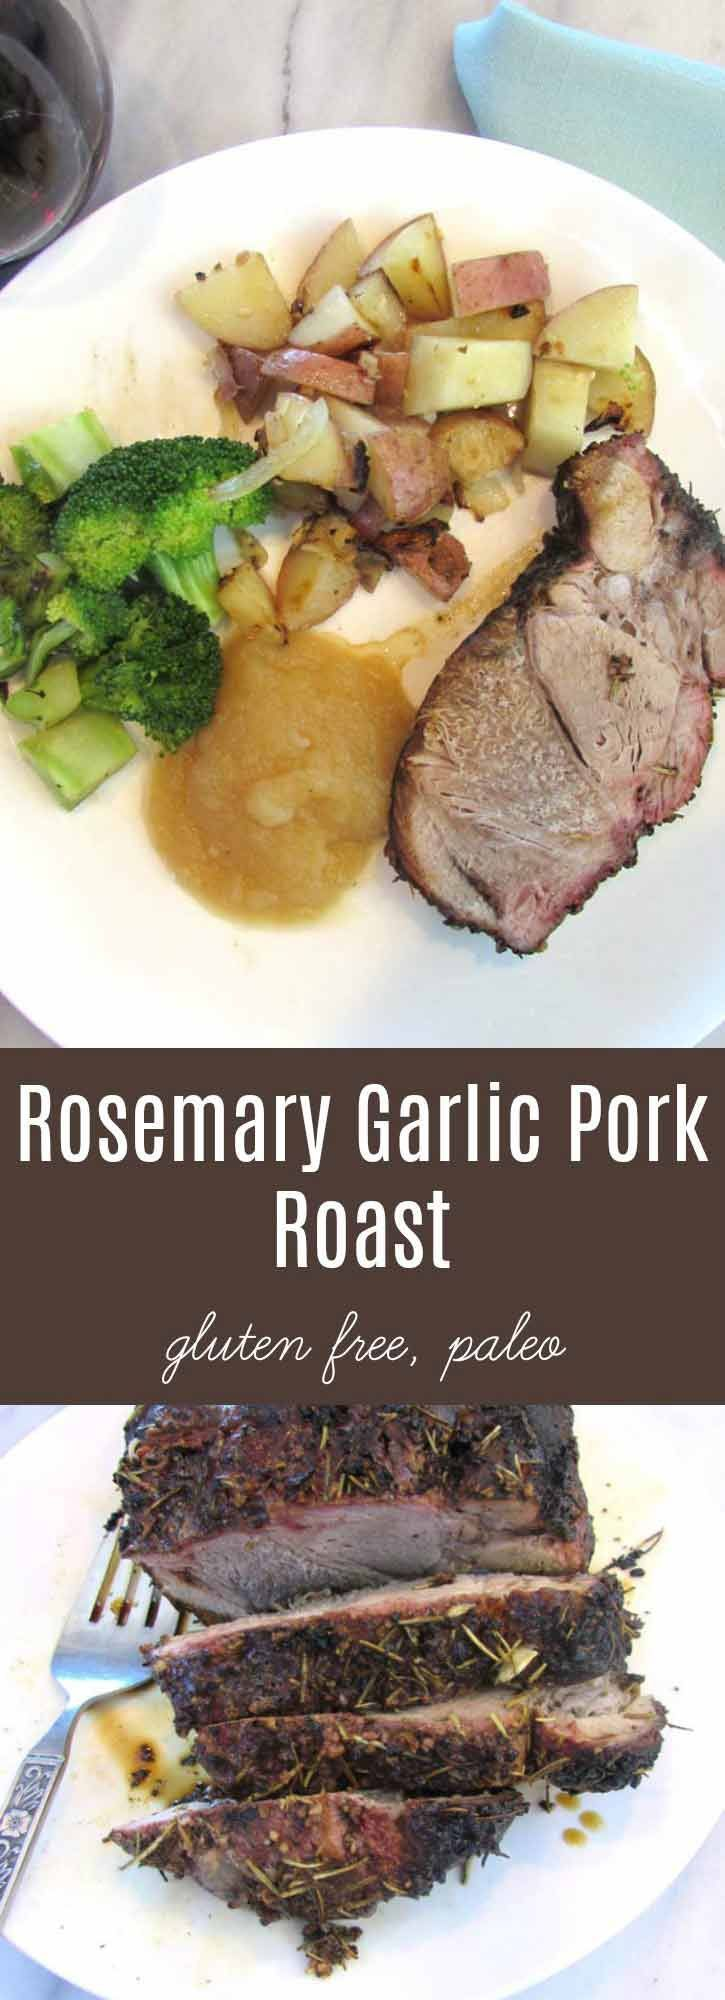 Easy Rosemary Garlic Pork Roast is perfect for a weekend or work day meal. Smoked, when there's more time. Baked or Slow Cooked when you're busy with life. | thenourishedfamily.com